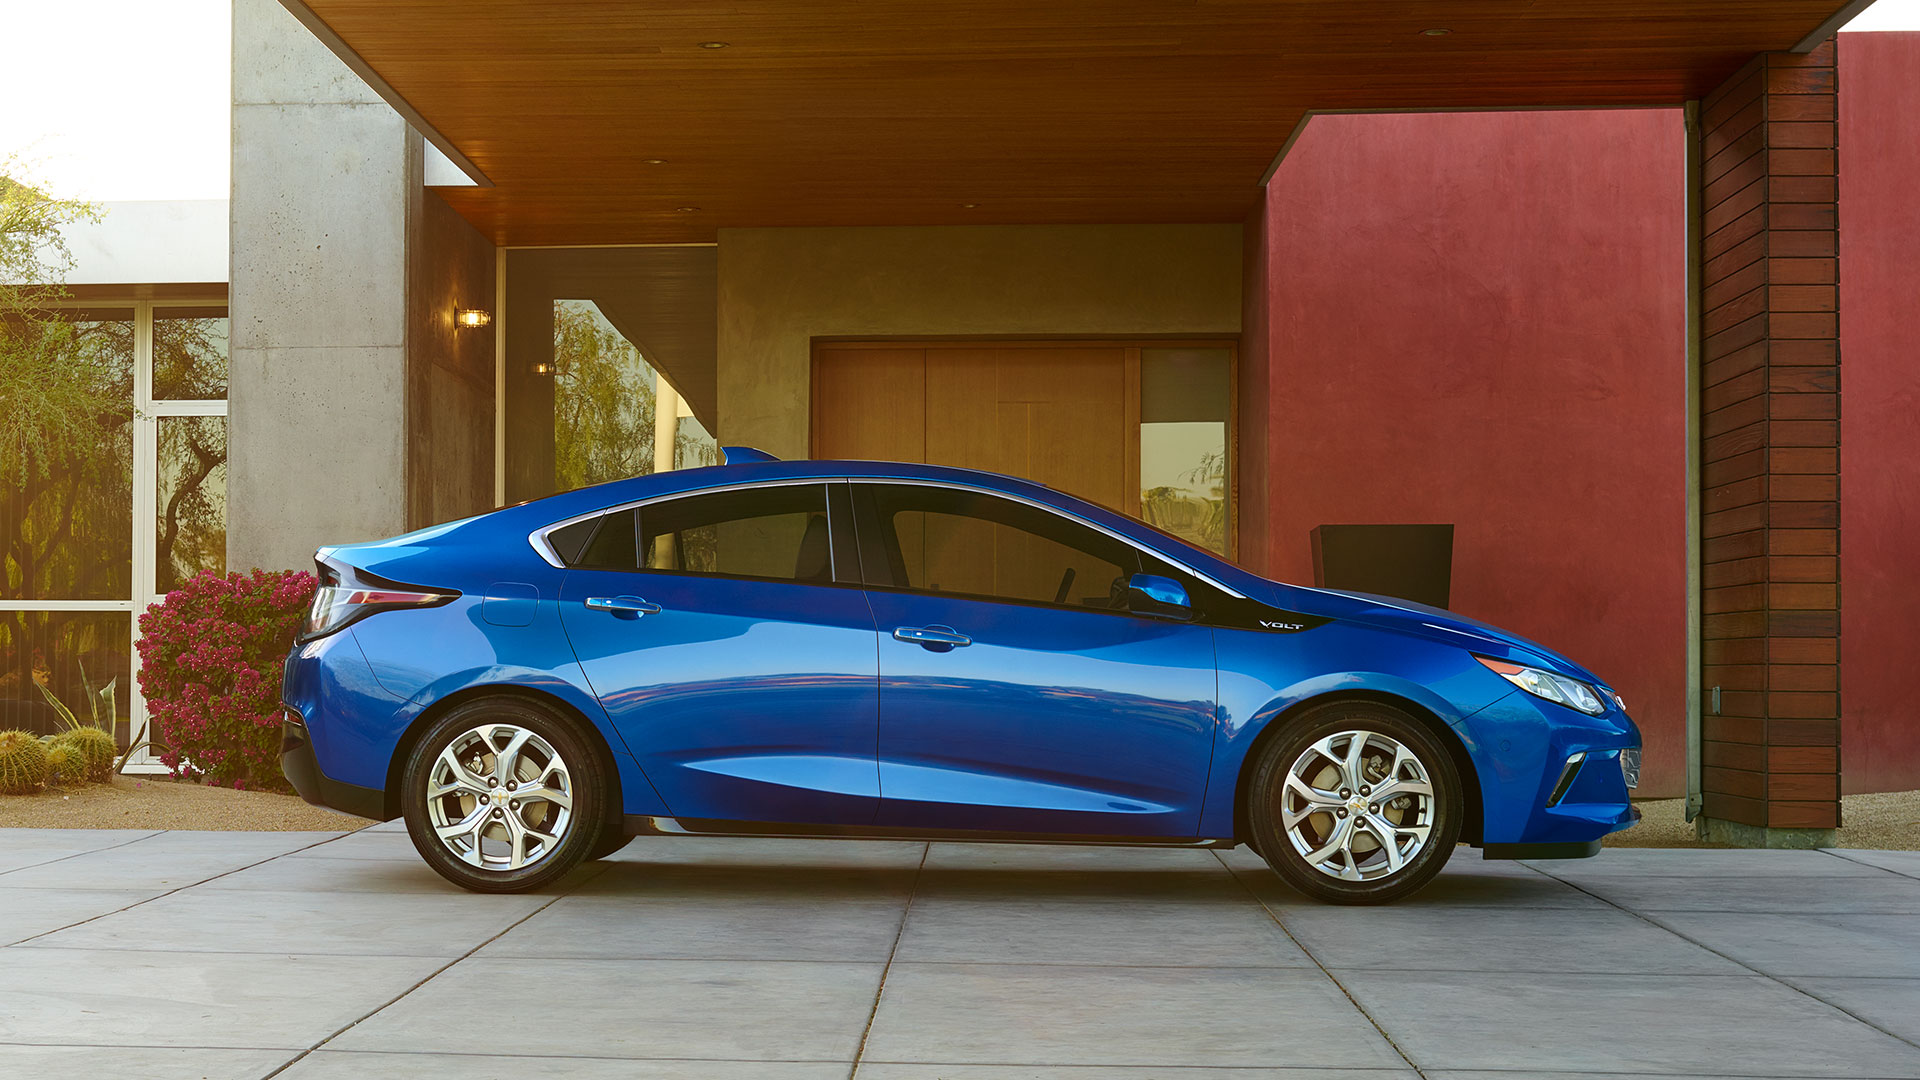 Valley Chevy - Chevrolet 2017 Volt: Blue Hybrid Car